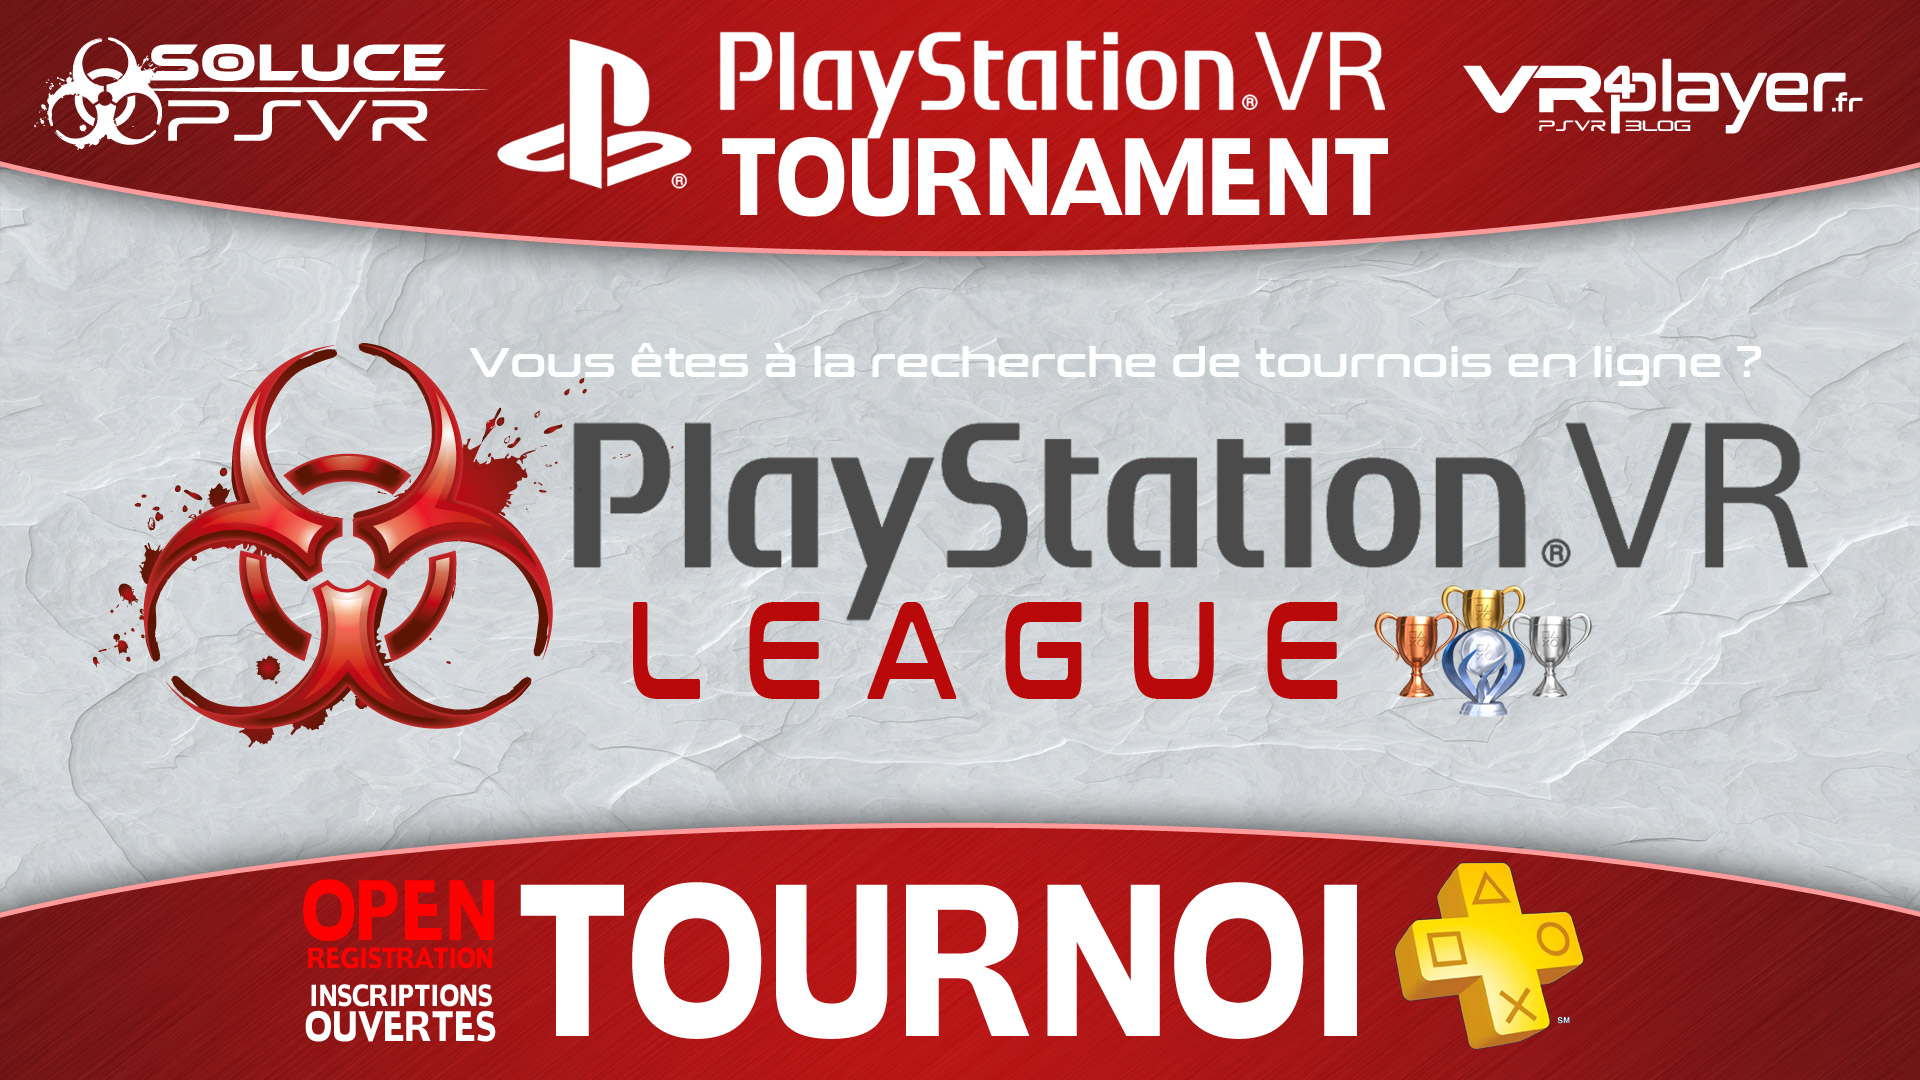 TOURNOI PLayStation VR - PS+ Soluce PSVR